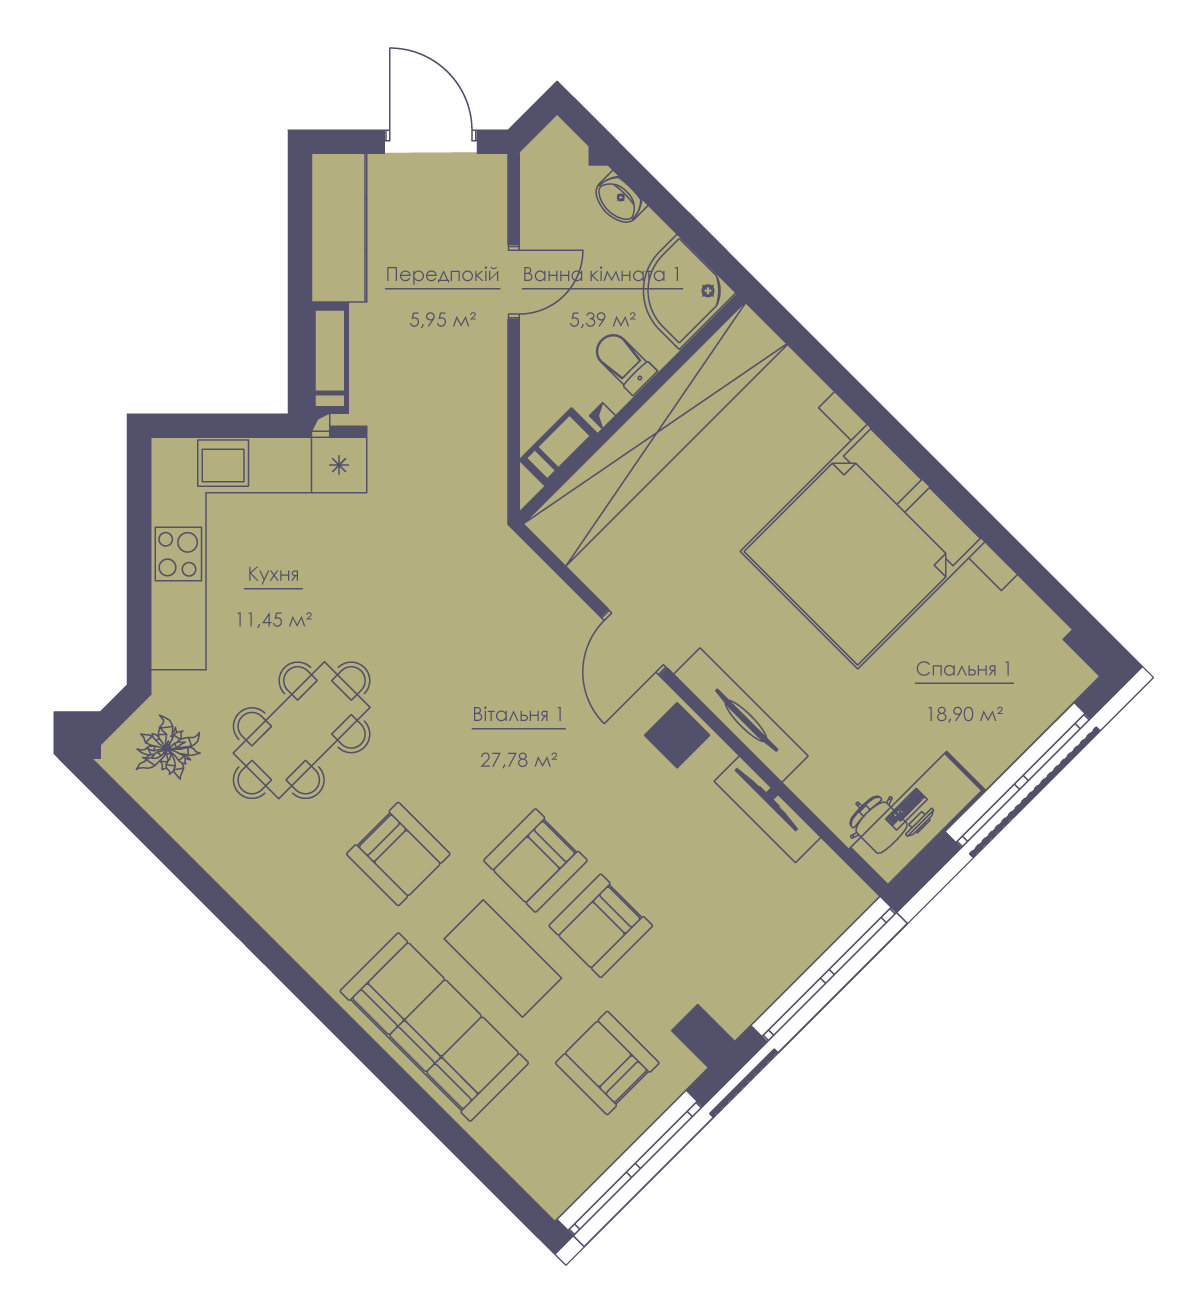 Apartment layout KV_13_2.2a_1_1_1-1